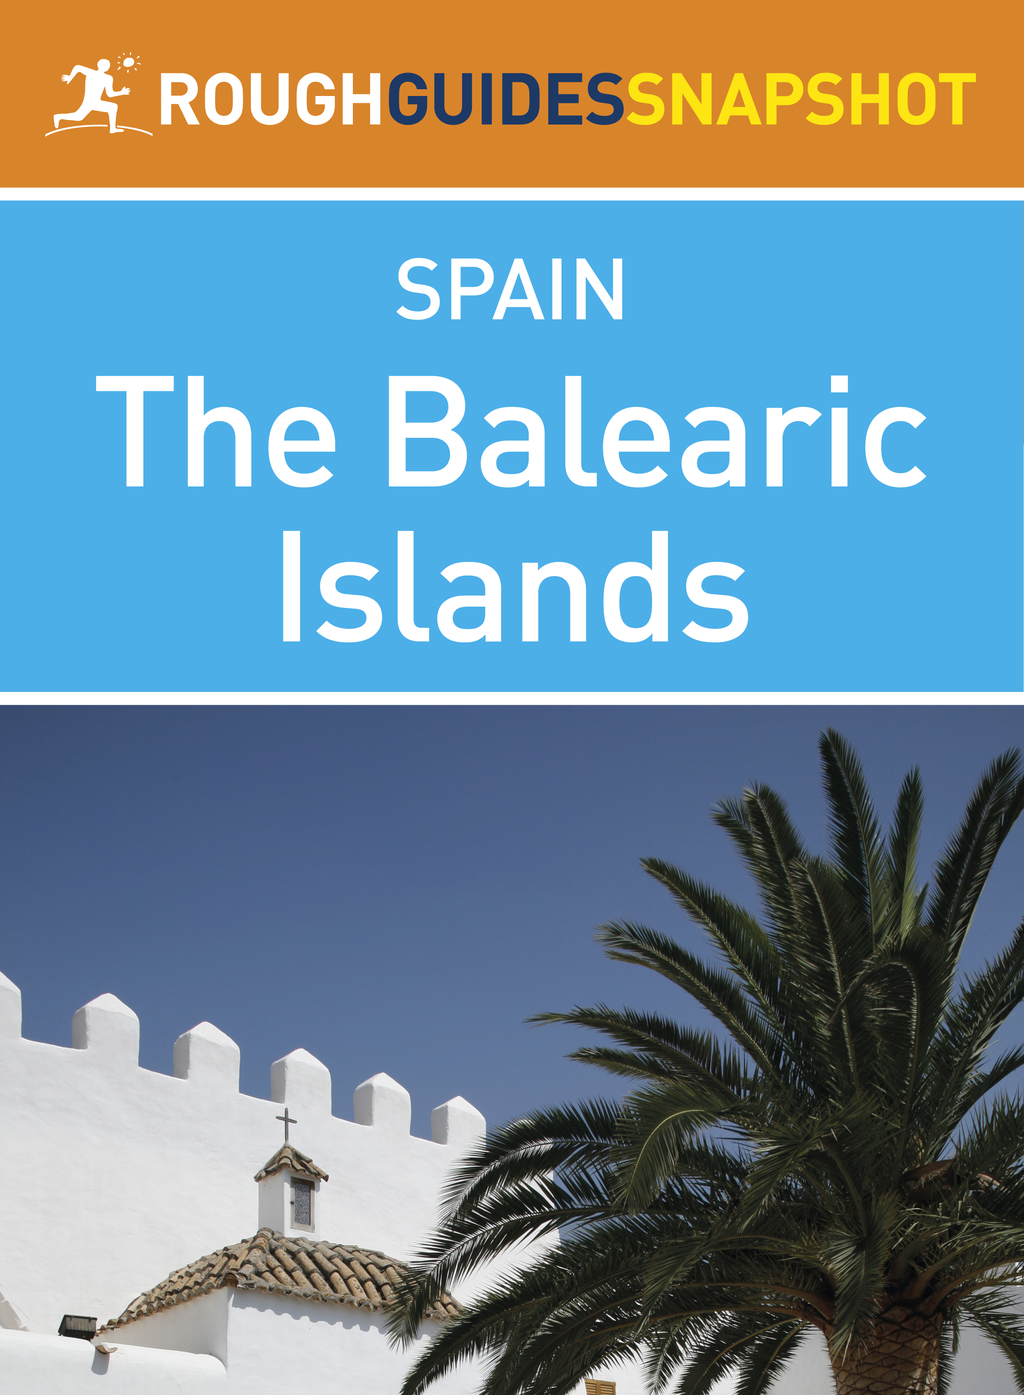 The Balearic Islands Rough Guides Snapshot Spain (includes Ibiza,  Formentera,  Mallorca and Menorca)